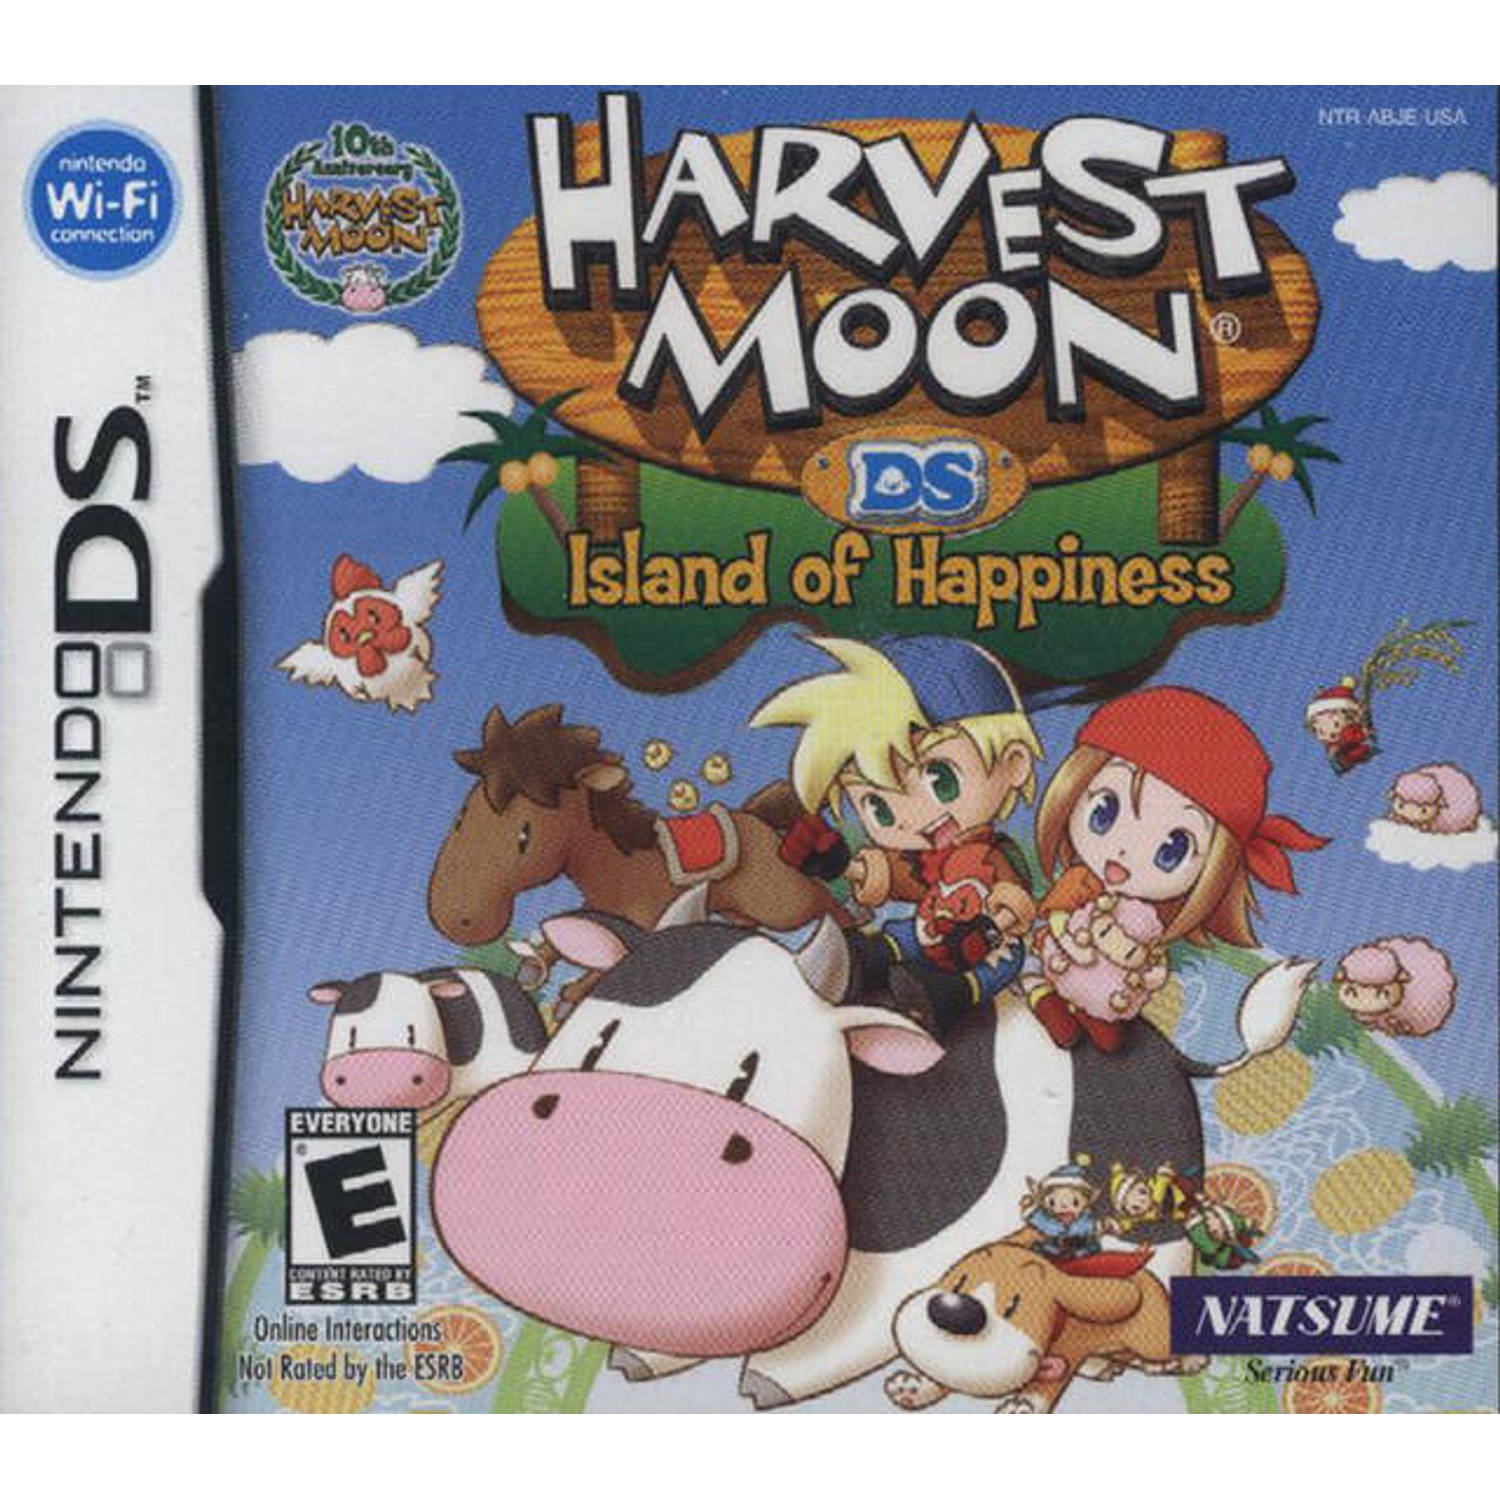 Harvest Moon DS Island of Happiness